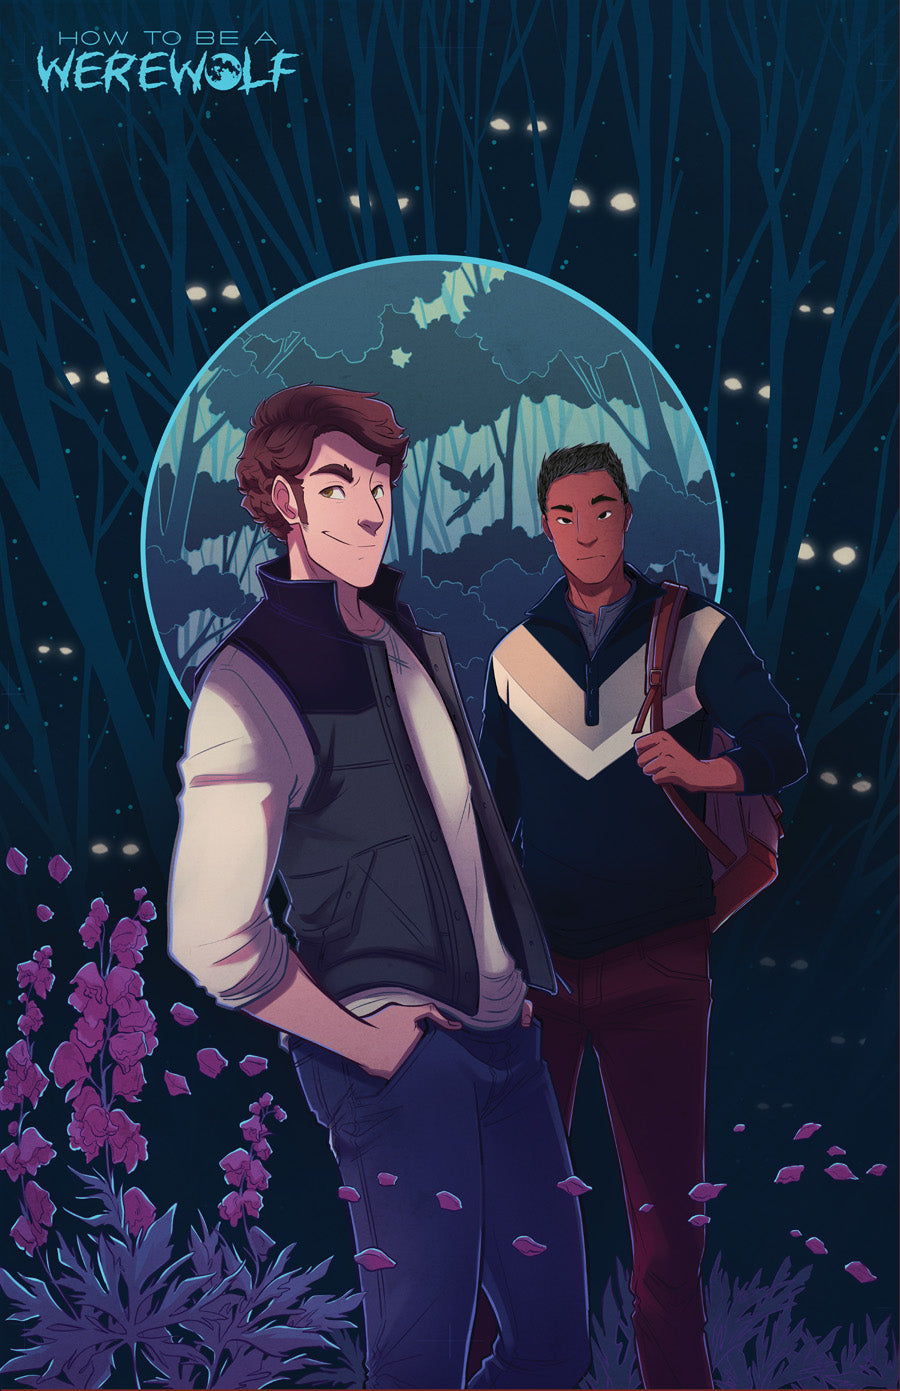 Chapter 9 Cover Print from How To Be a Werewolf - Webcomic Merchandise